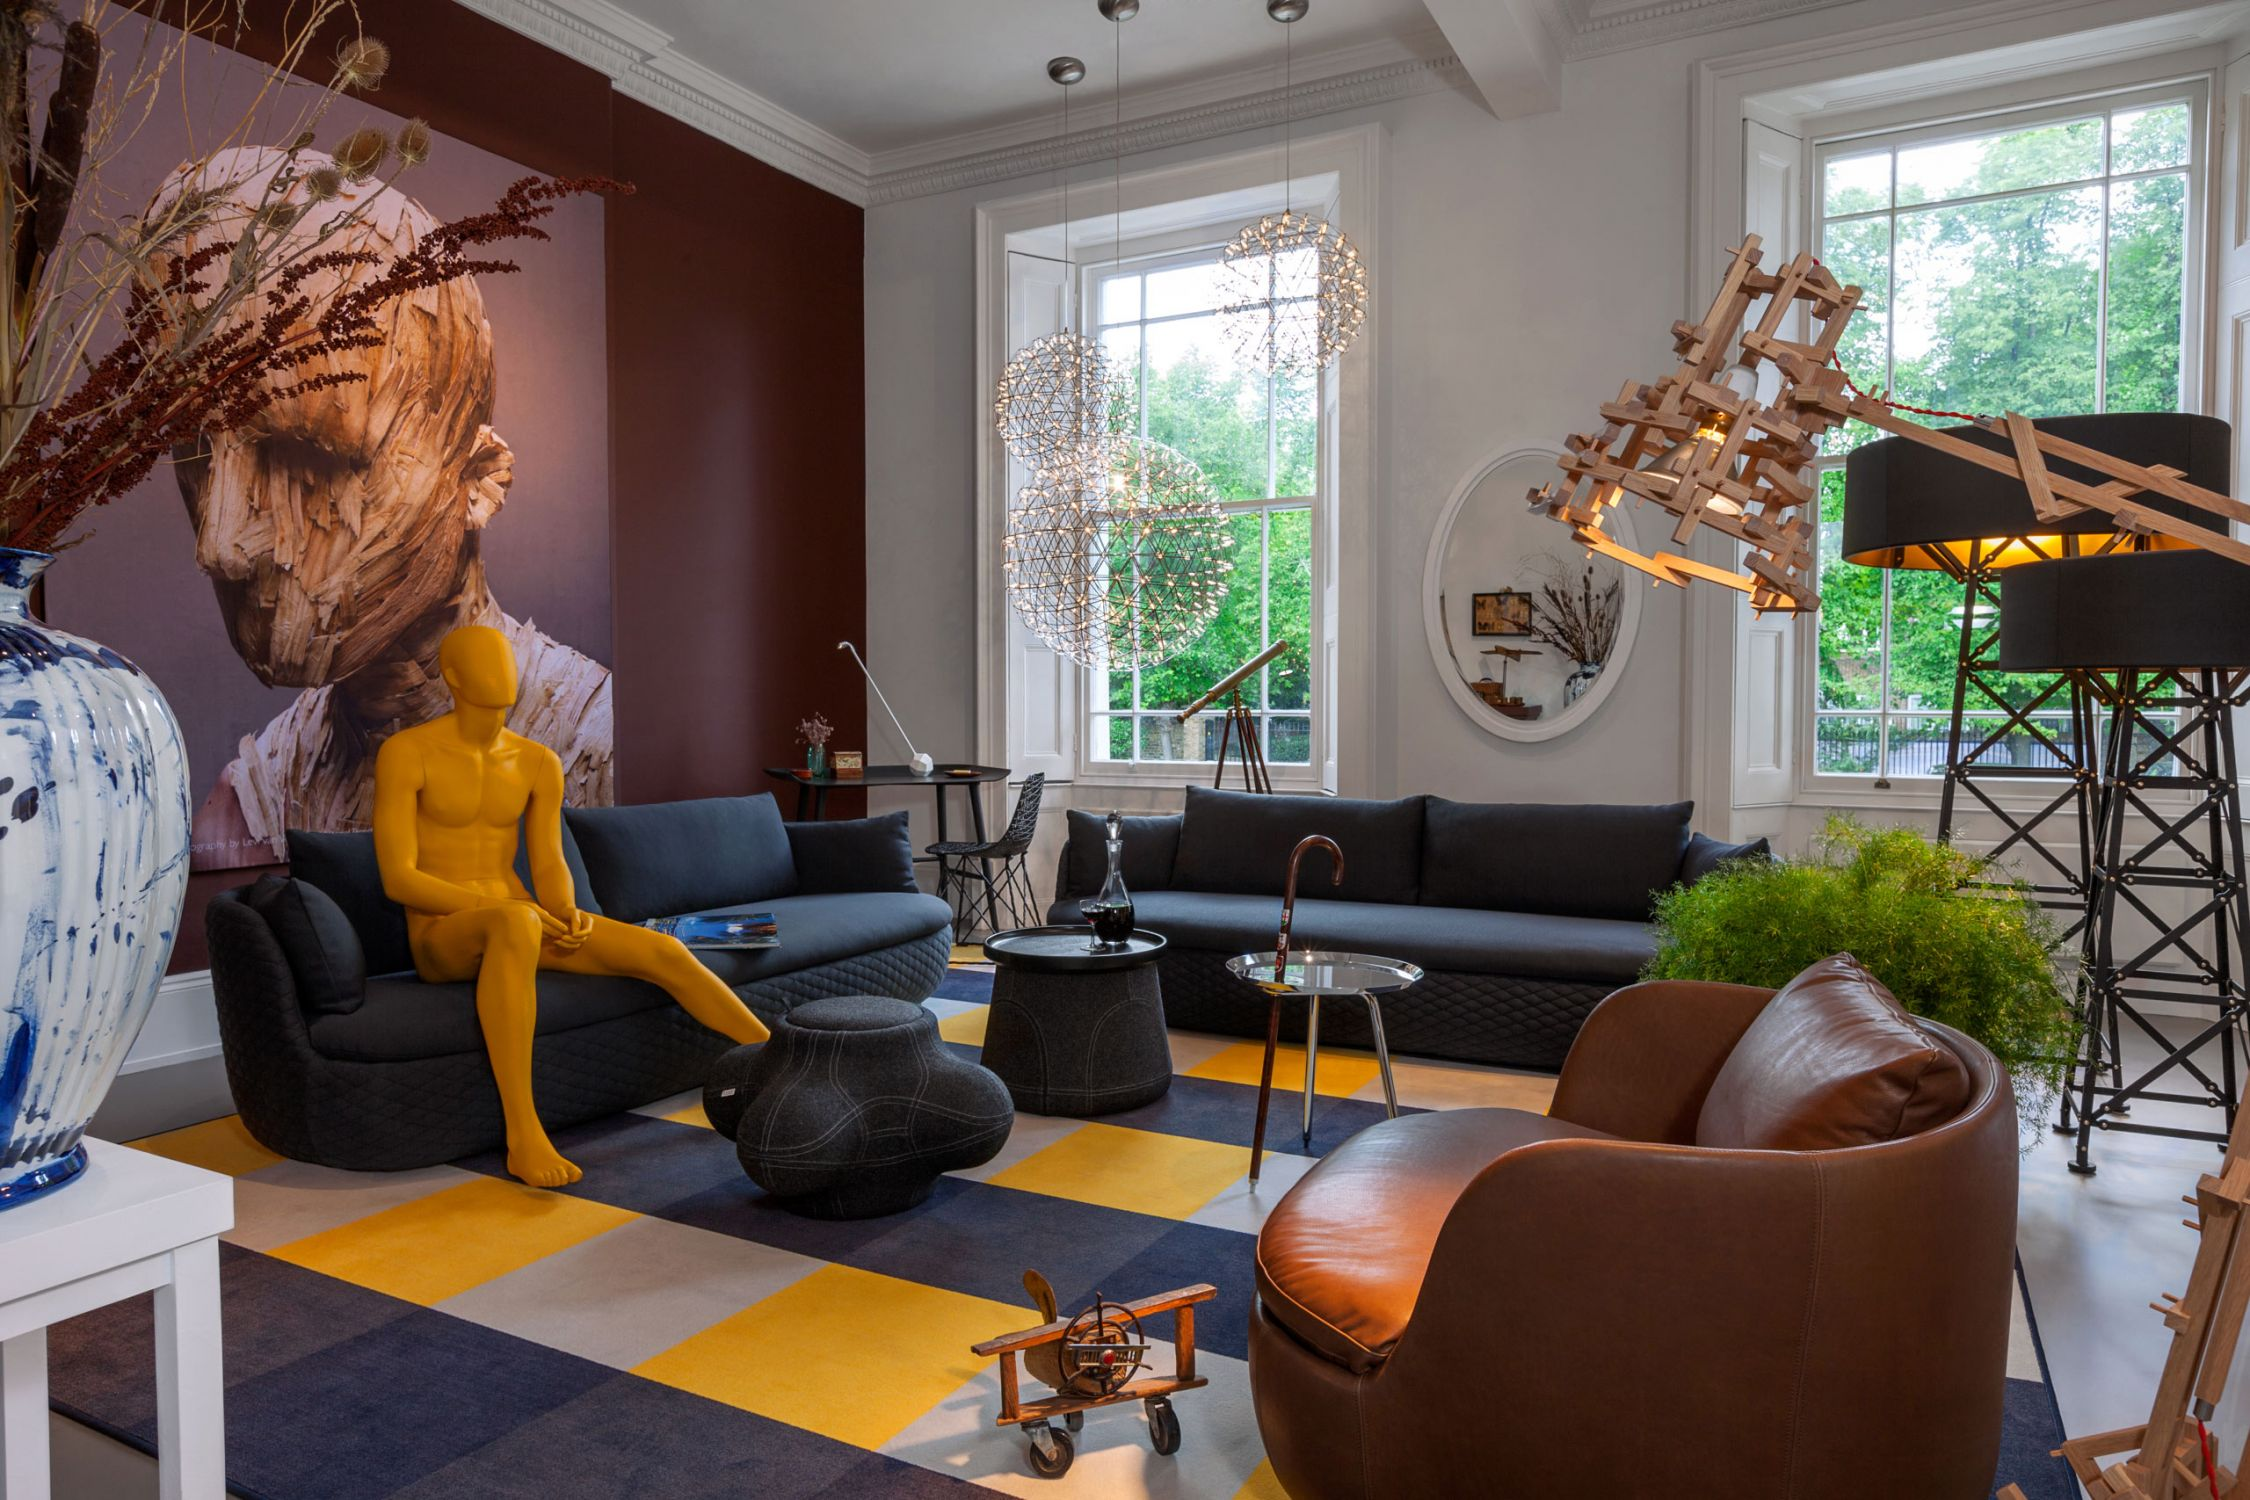 Moooi Works and Bart Schilder have added a softness to the classic silhouette by using modern day skills and a timeless eye for detail.